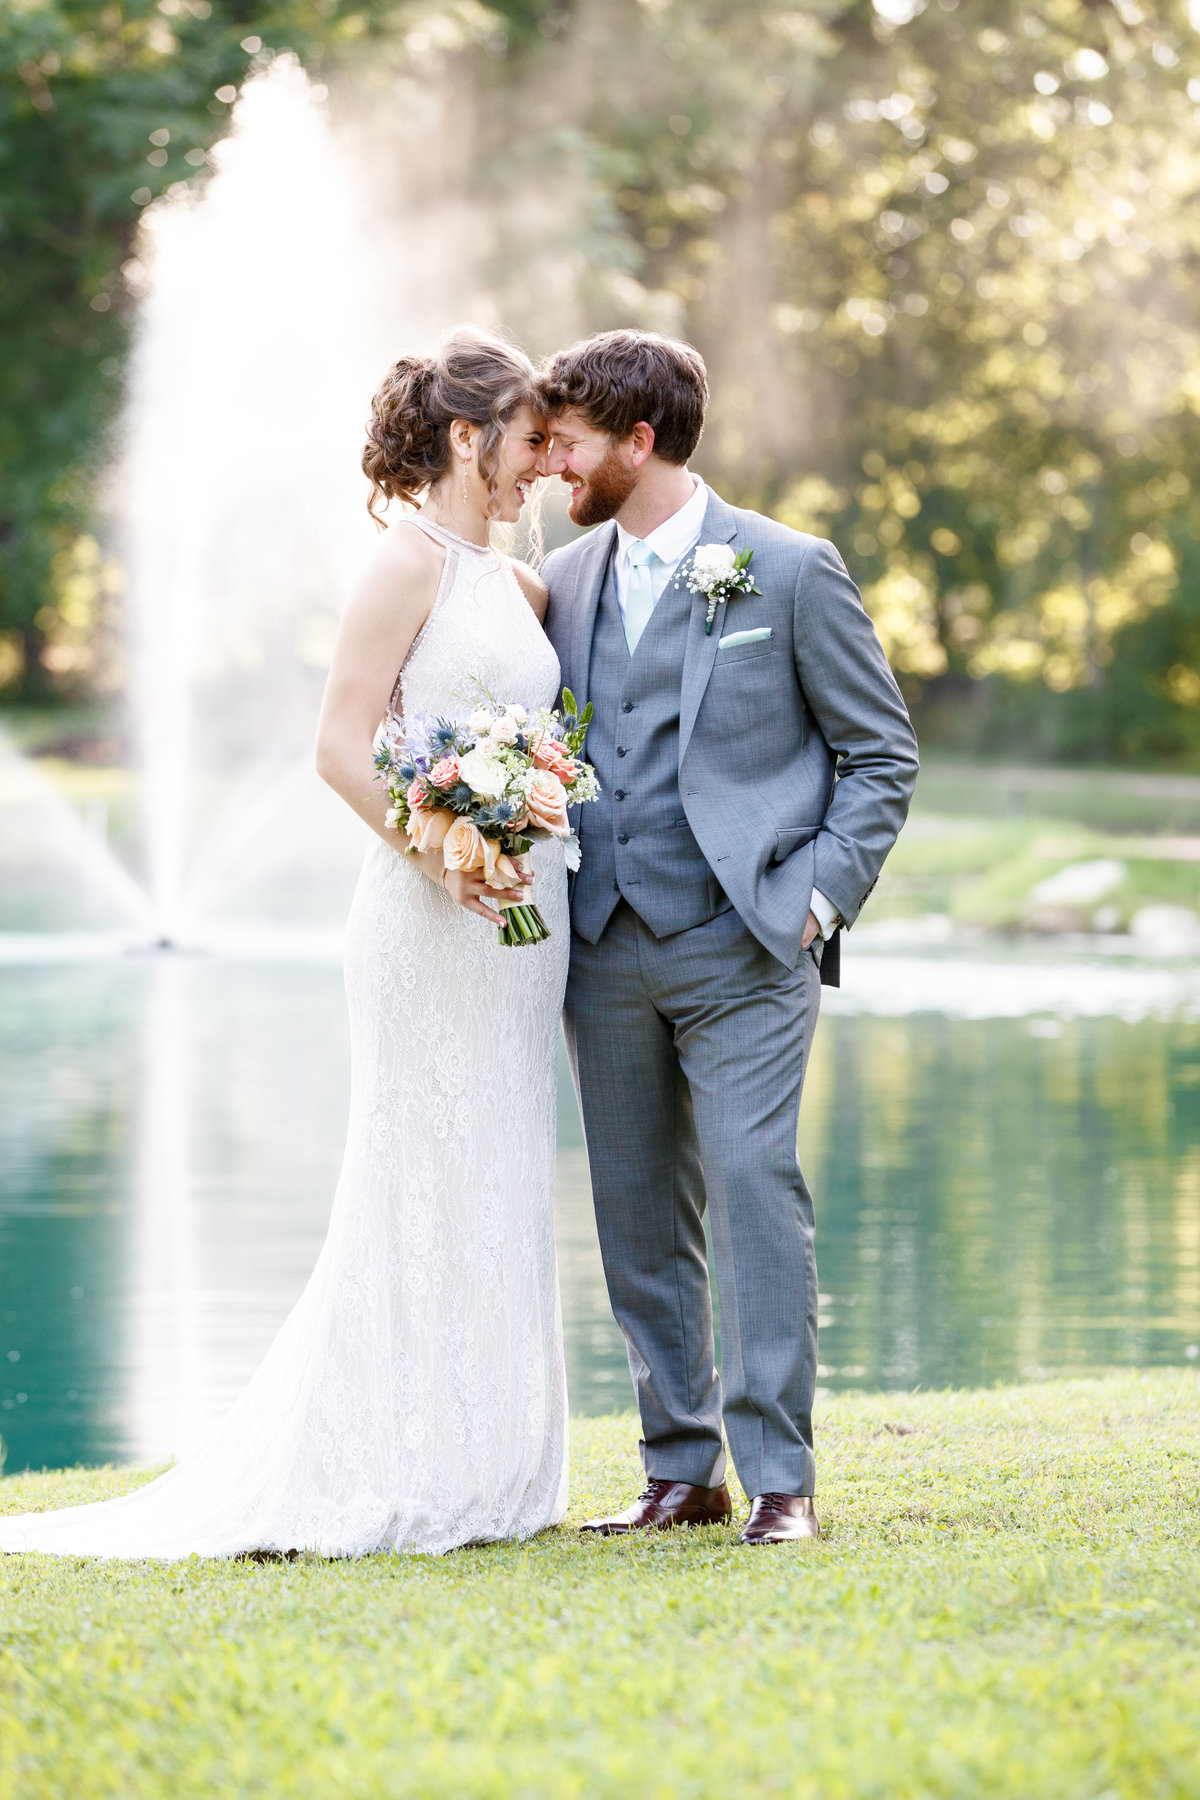 canyonwood ridge wedding photographer bride groom fountain 250 S Canyonwood Dr, Dripping Springs, TX 78620